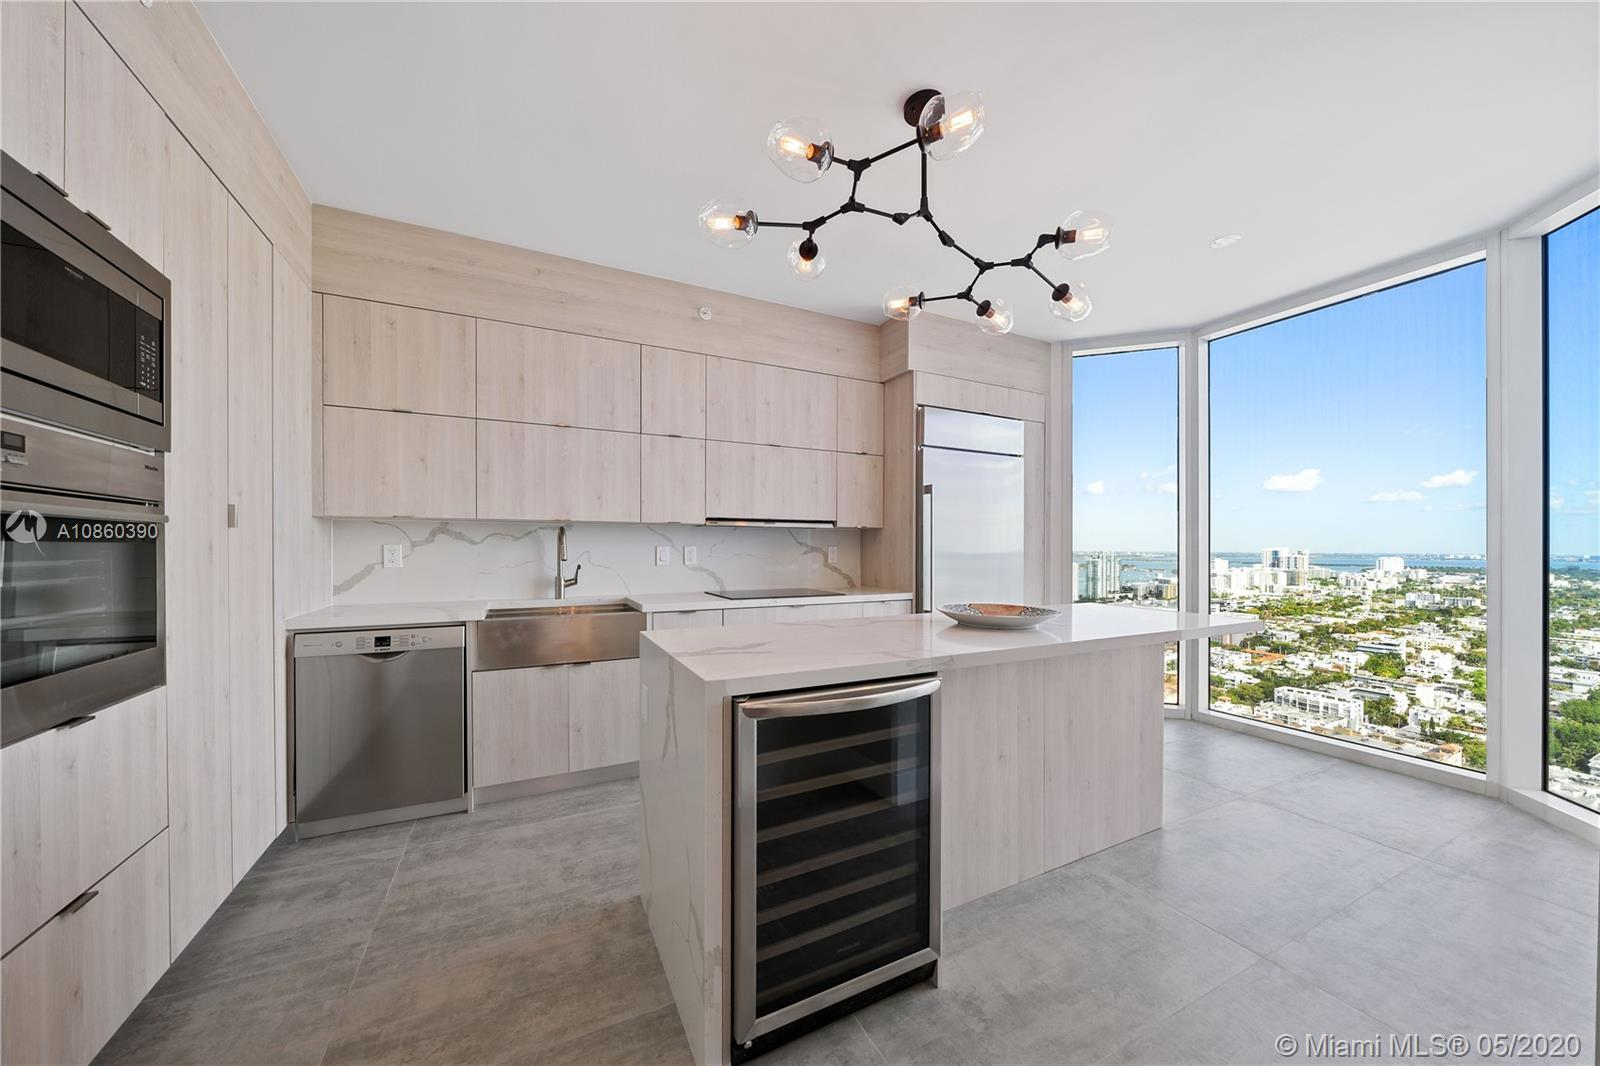 Incredible opportunity to own a completely renovated flow-through residence at the reinvented Portof